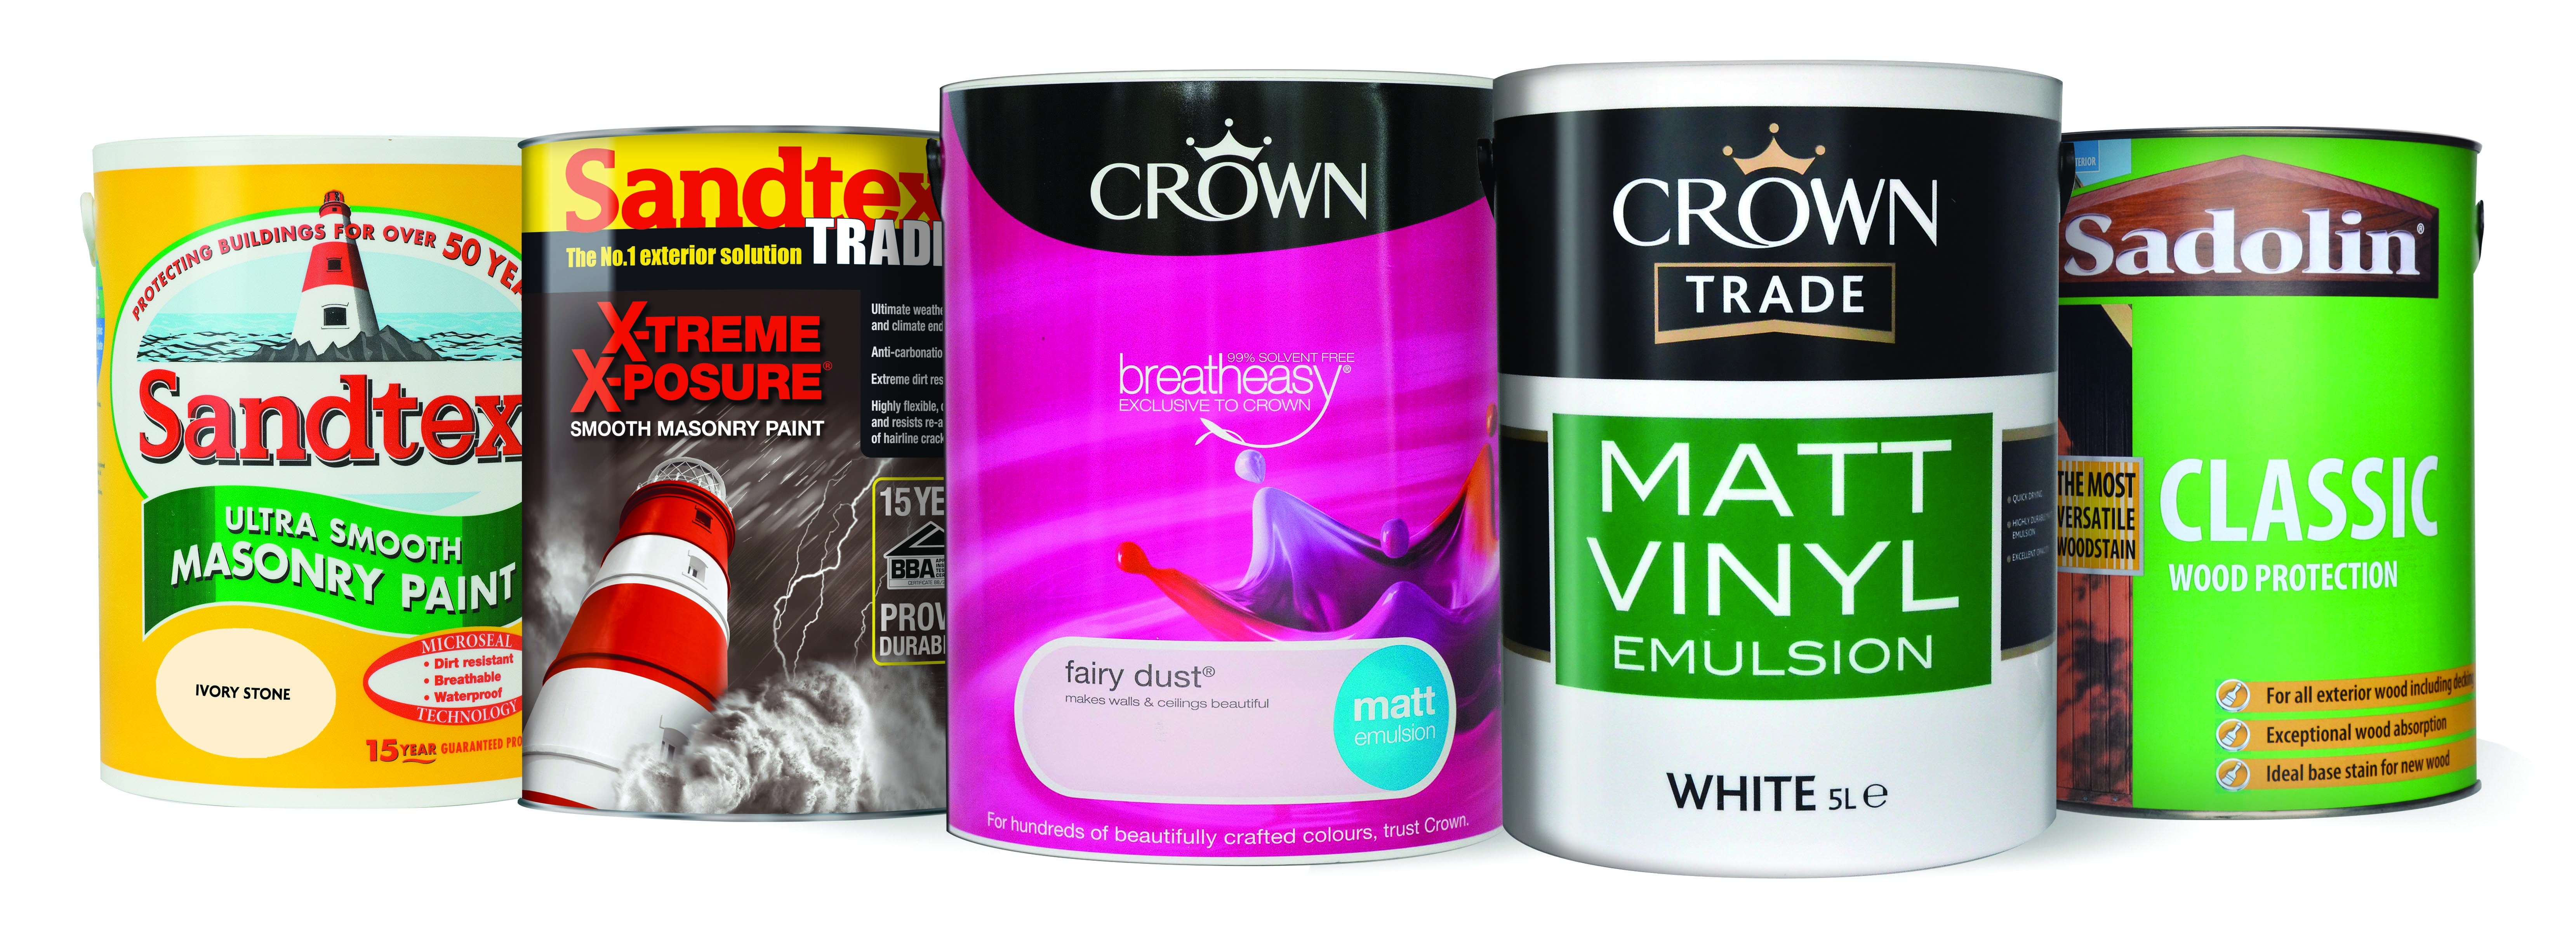 Crown Paints Manufacturing Sites Uk